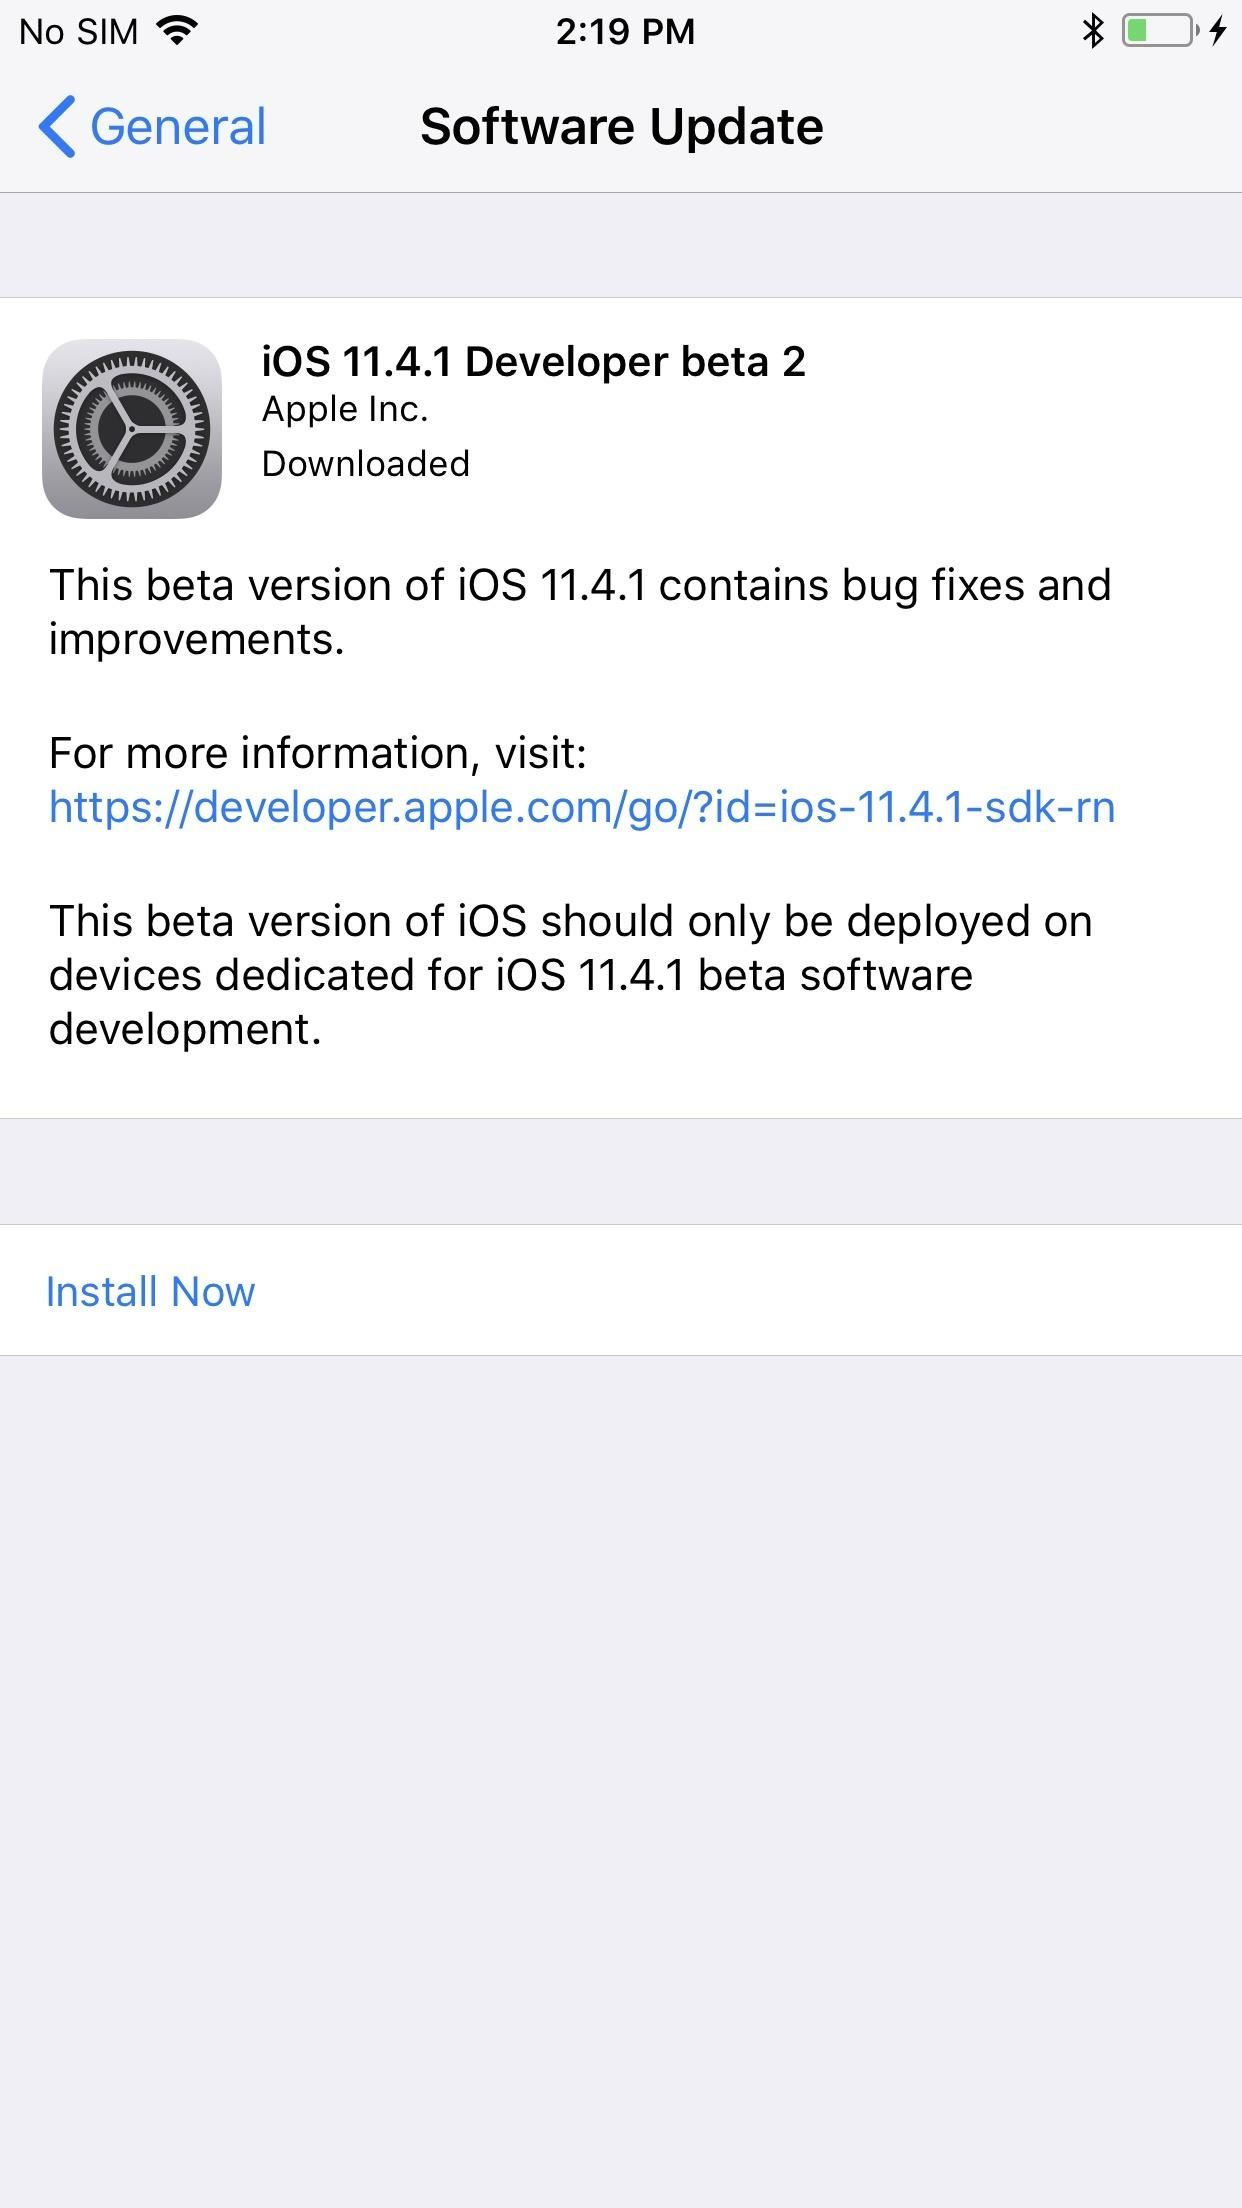 iOS 11.4.1 Beta 2 Released for iPhones with No Real Bug Fixes or Improvements